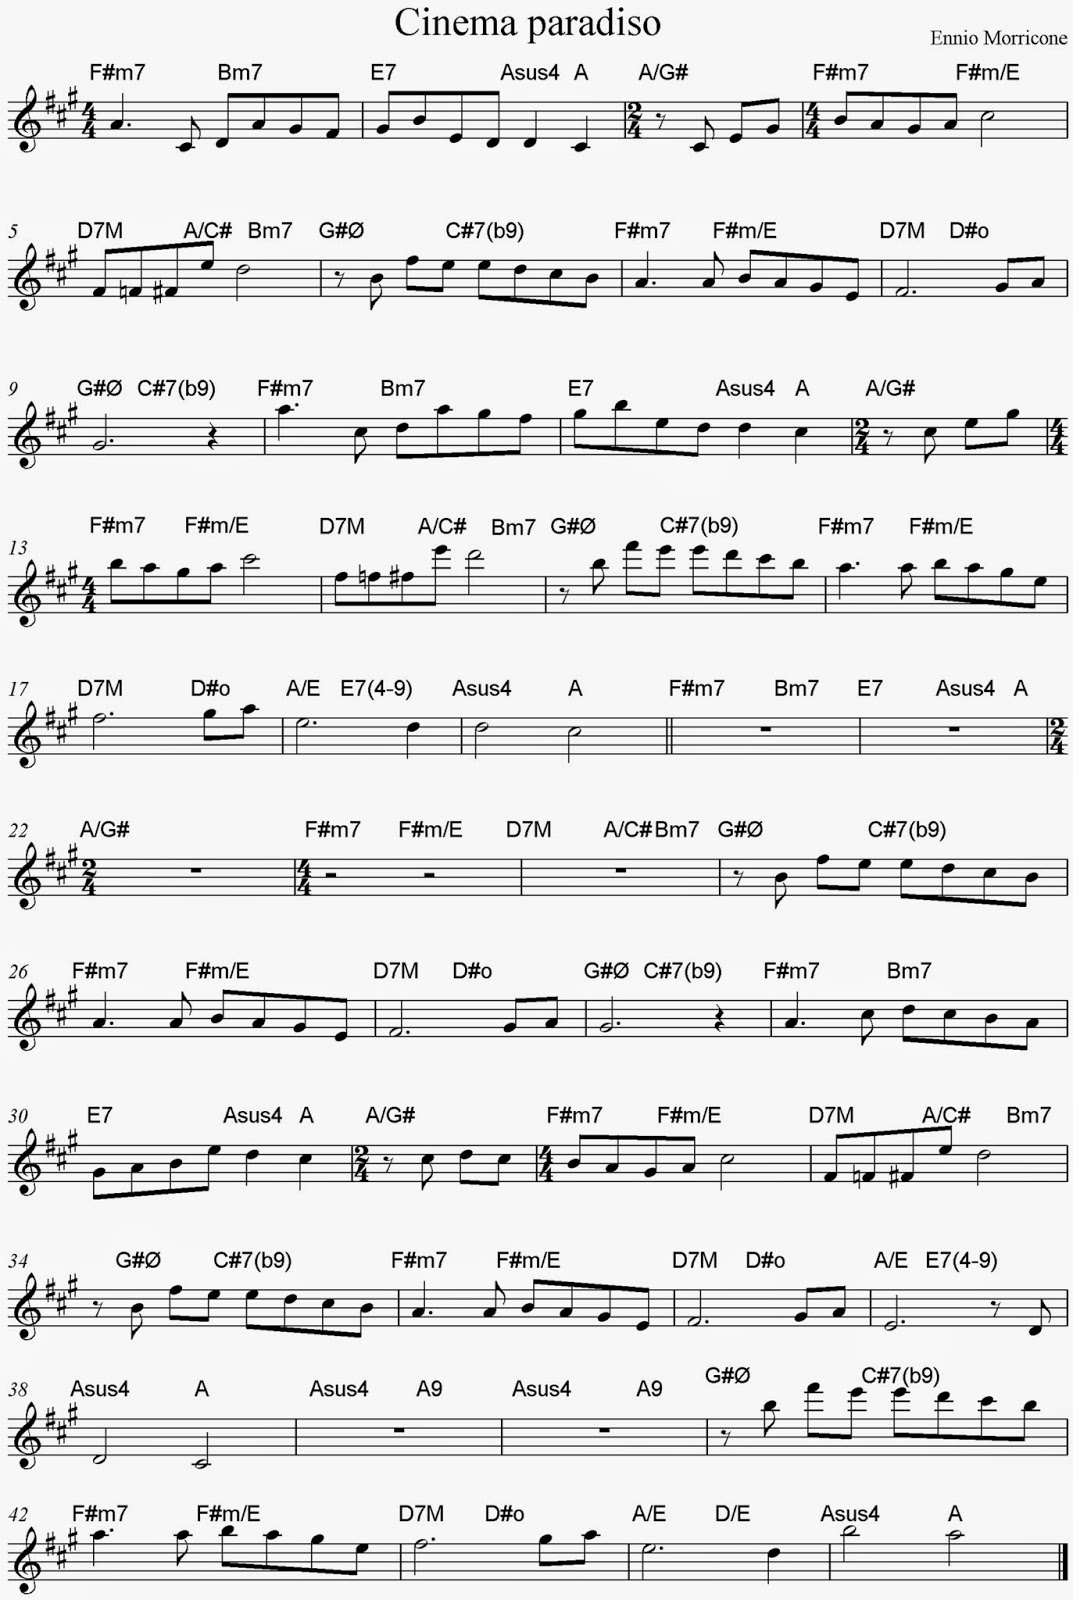 PARTITURA DE CINEMA PARADISO CON ACORDES SHEET MUSIC AND CHORDS